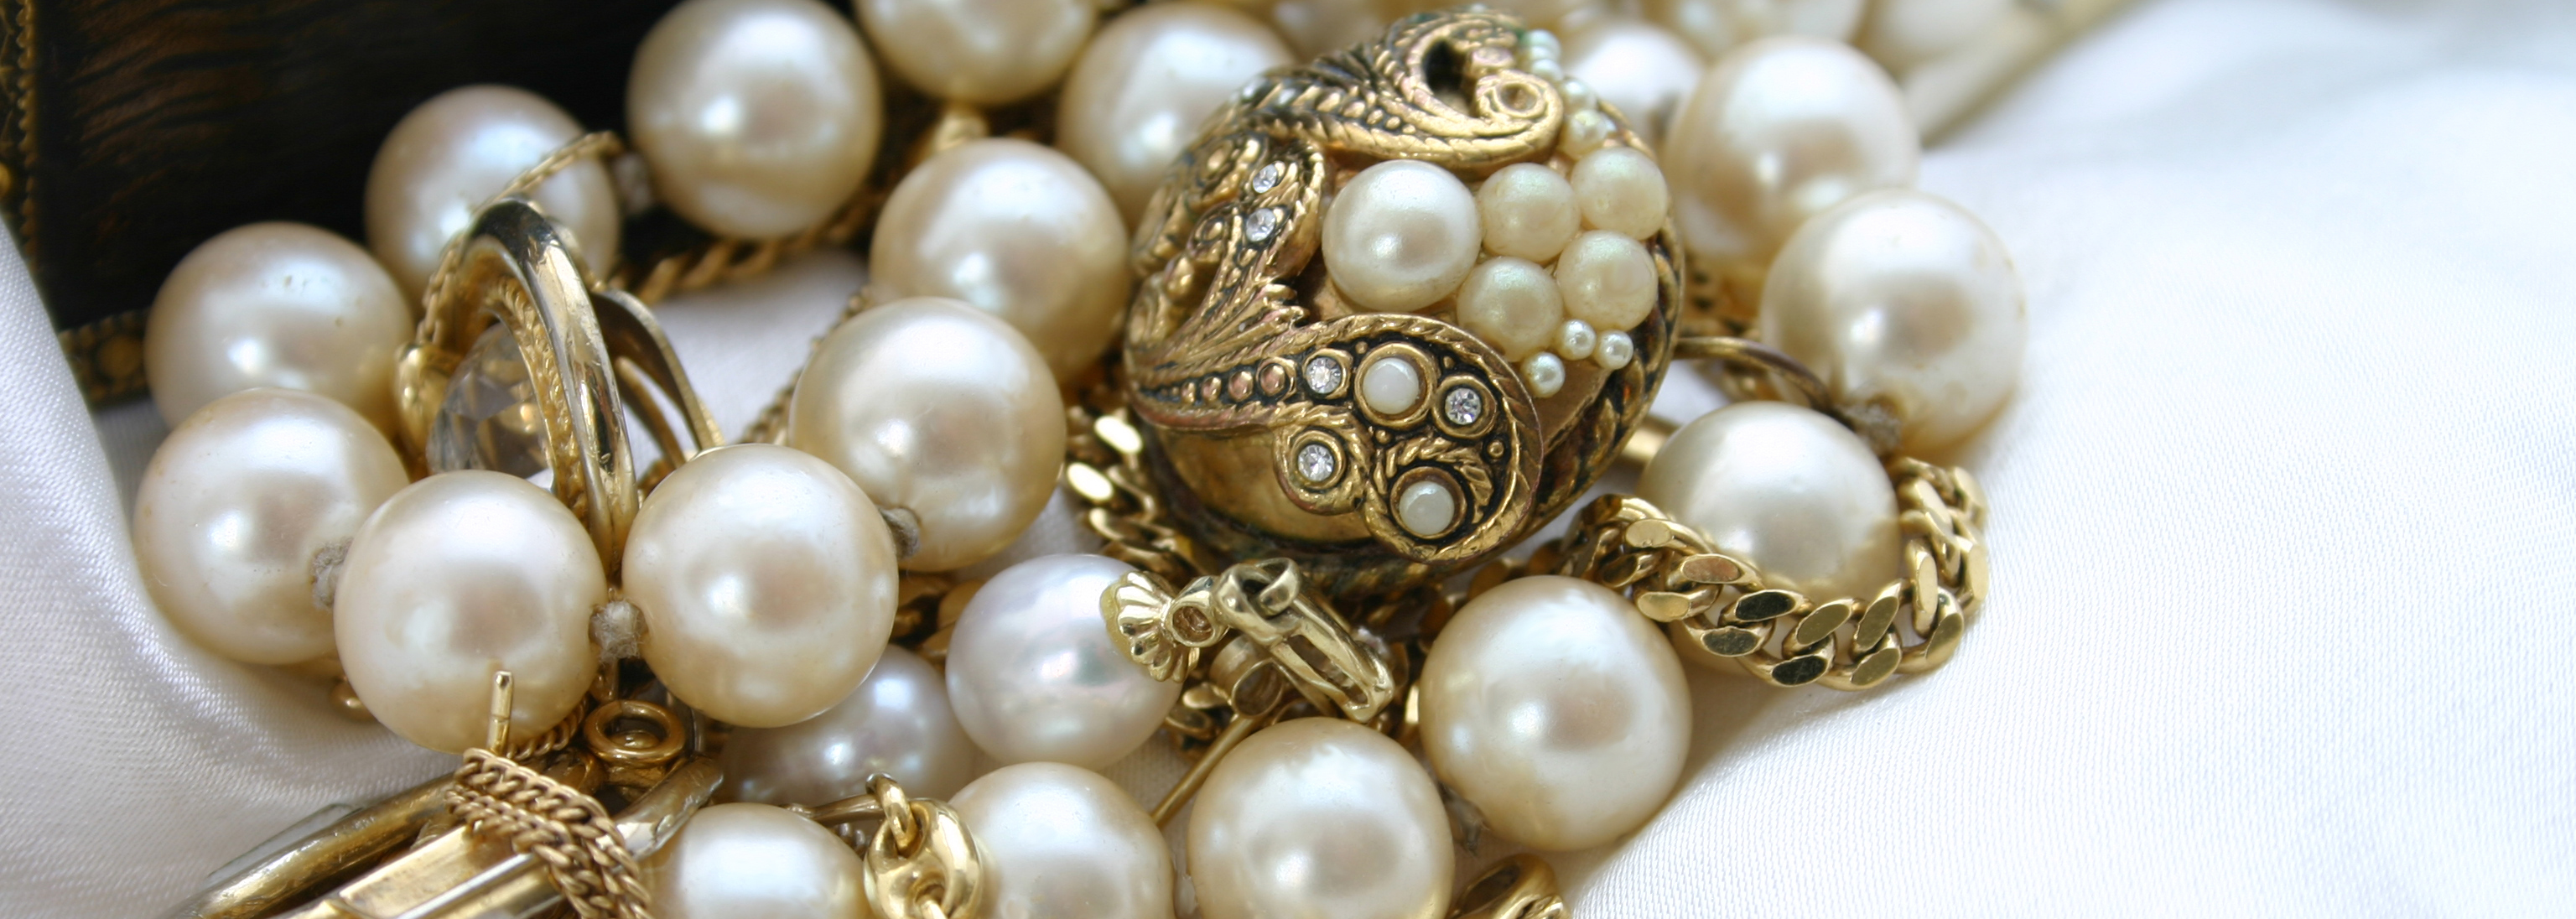 jewelry auctions online fine antique jewelry auctions buy estate